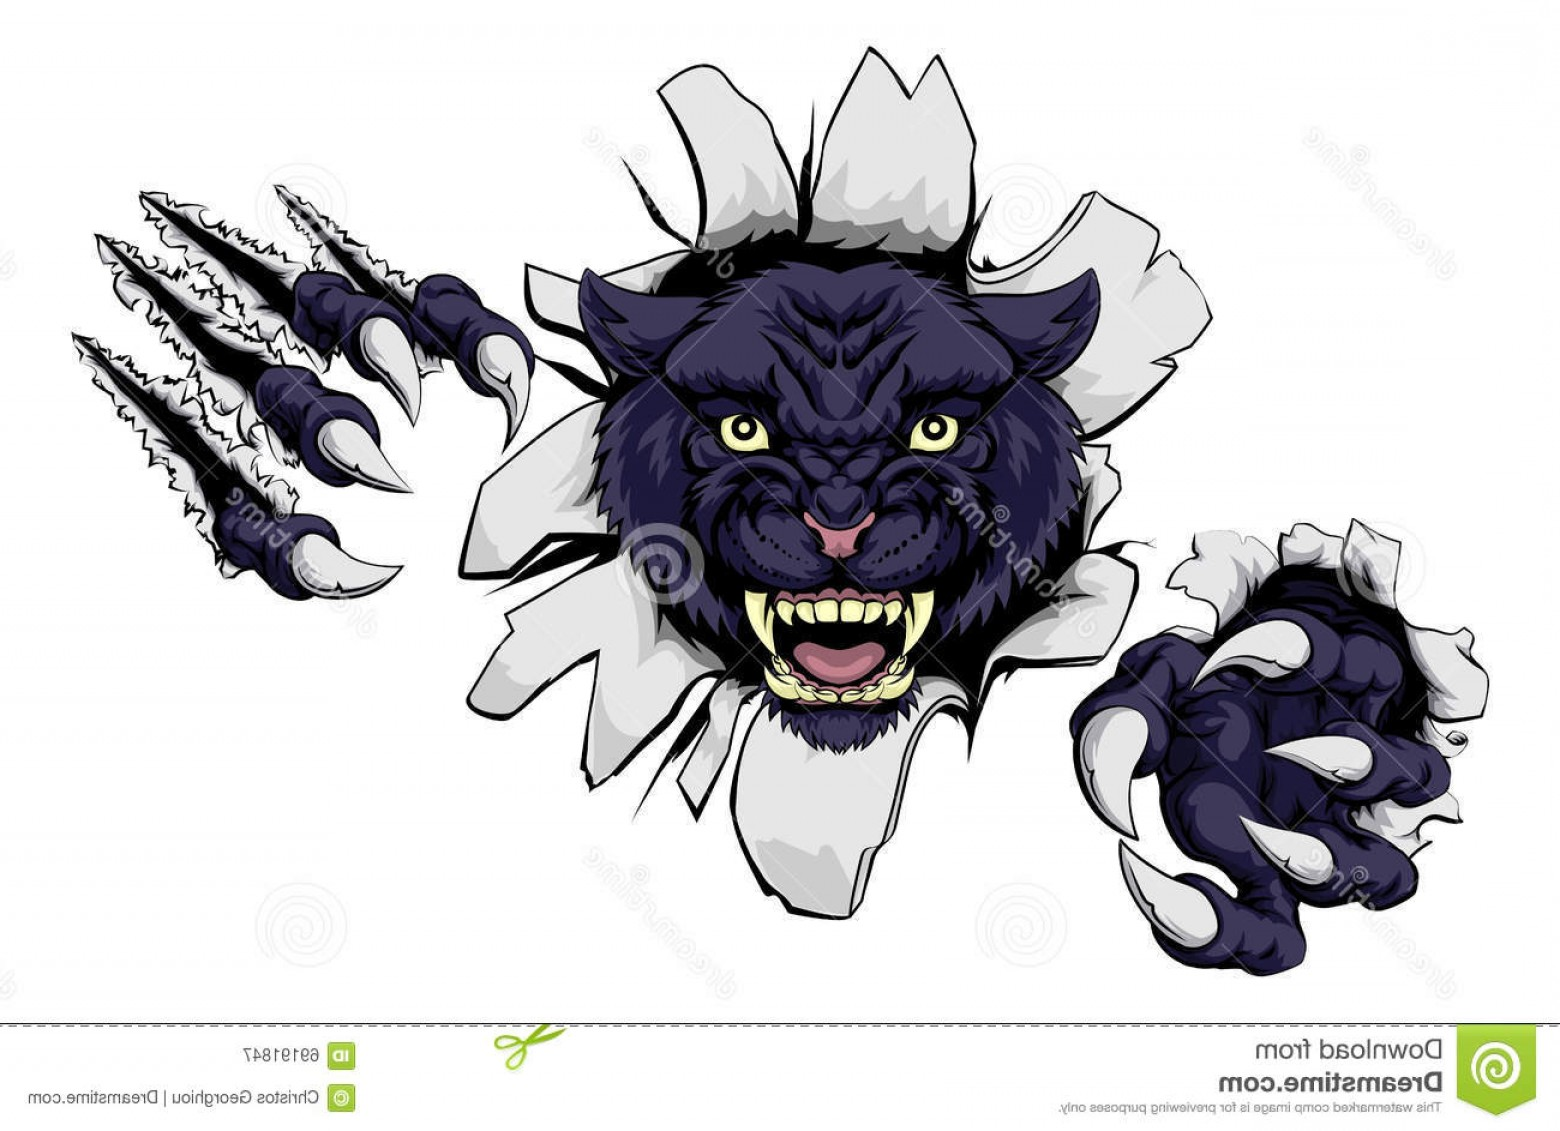 Panther Mascot Vector Sports: Stock Illustration Mean Black Panther Mascot Cartoon Sports Ripping Wall His Claws Image